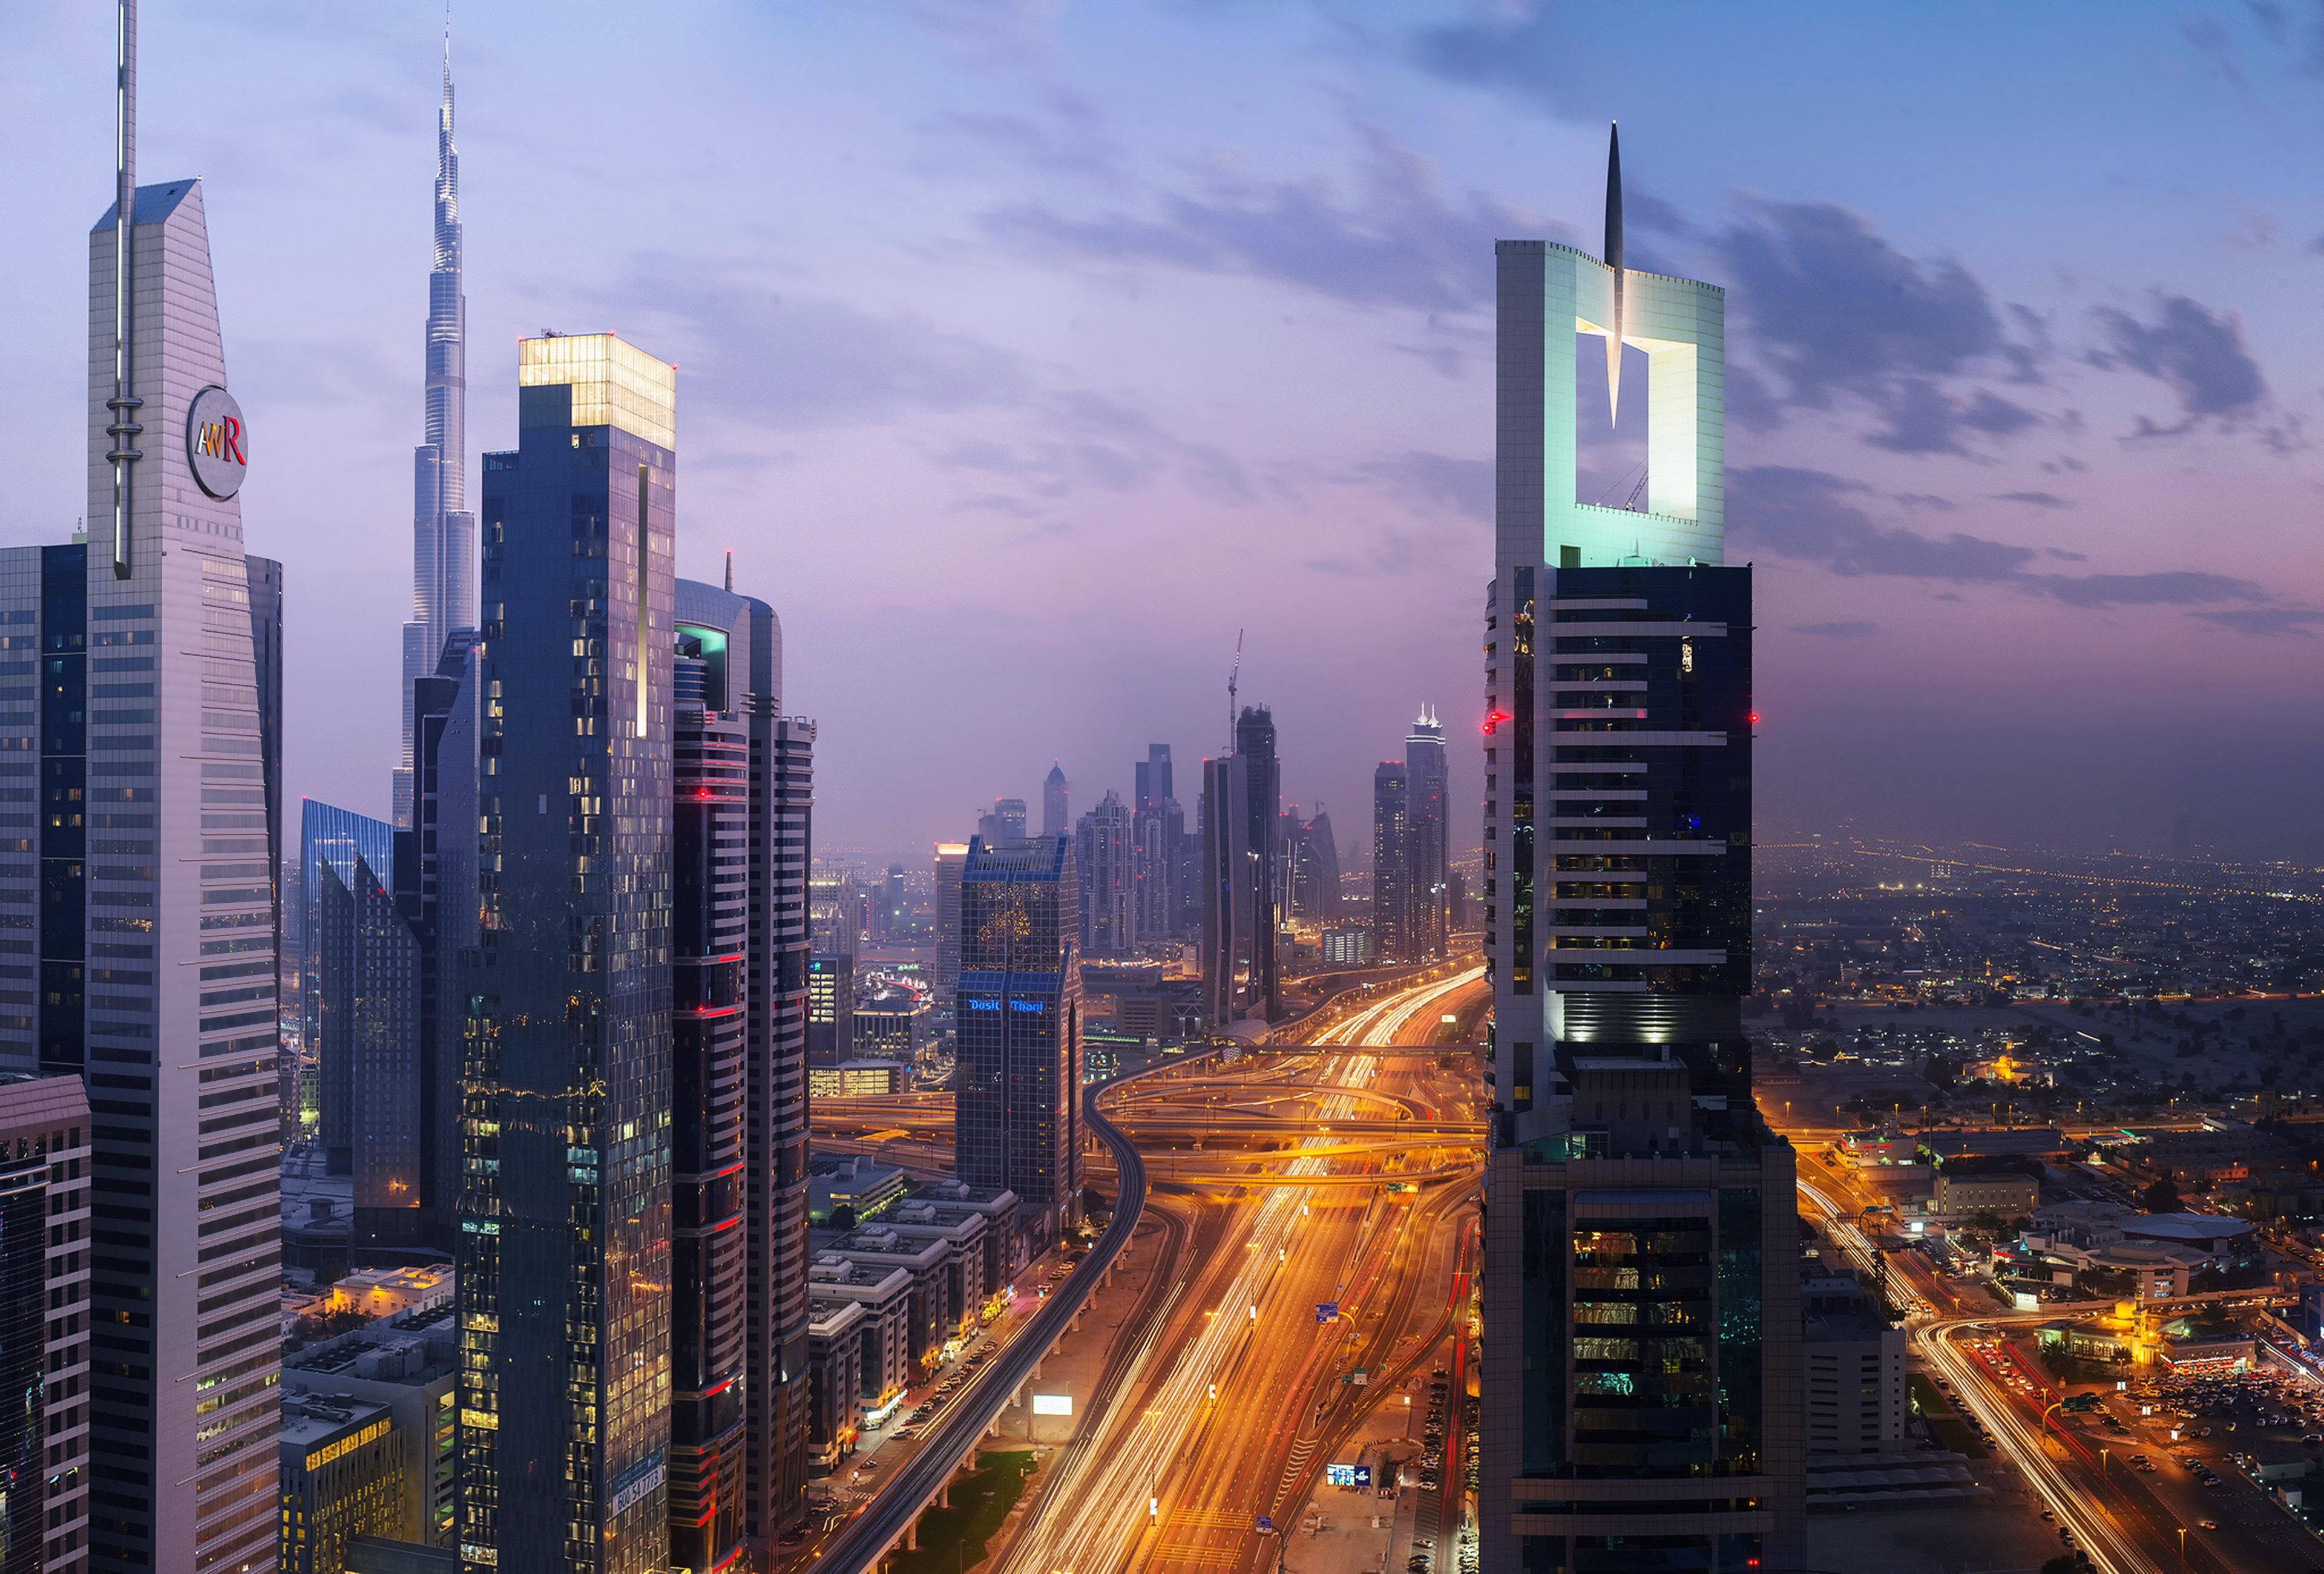 Buildings Burj City Country Development Dubai Evening